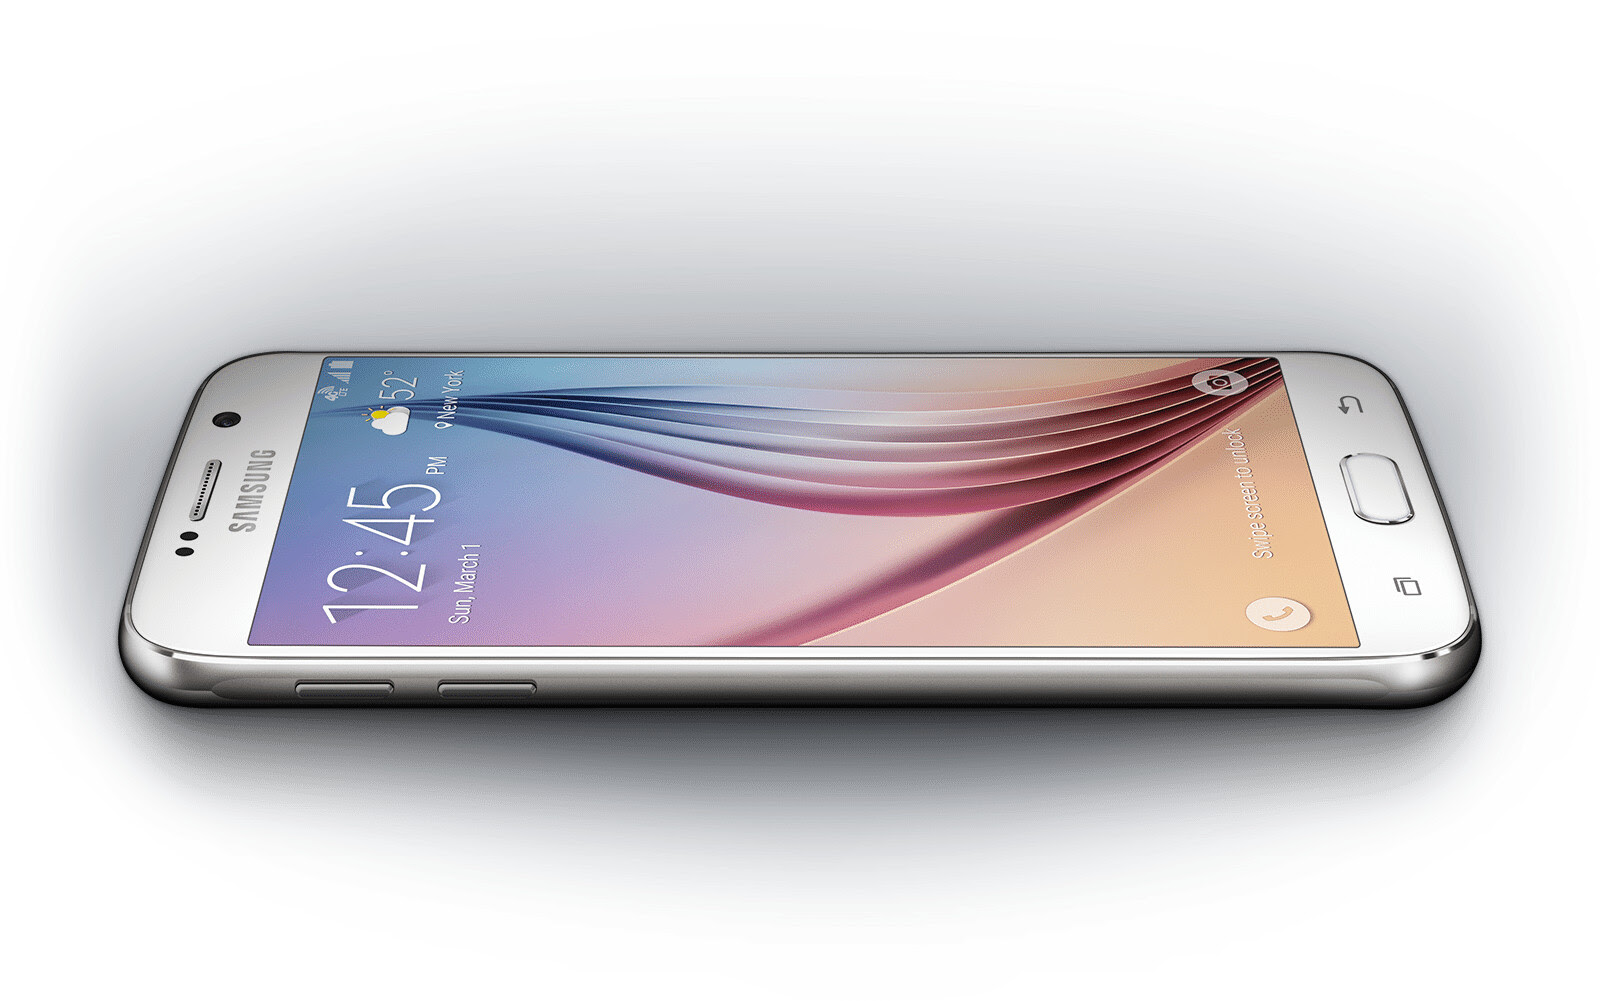 Samsung Galaxy S6 review at - Ezy4gadgets